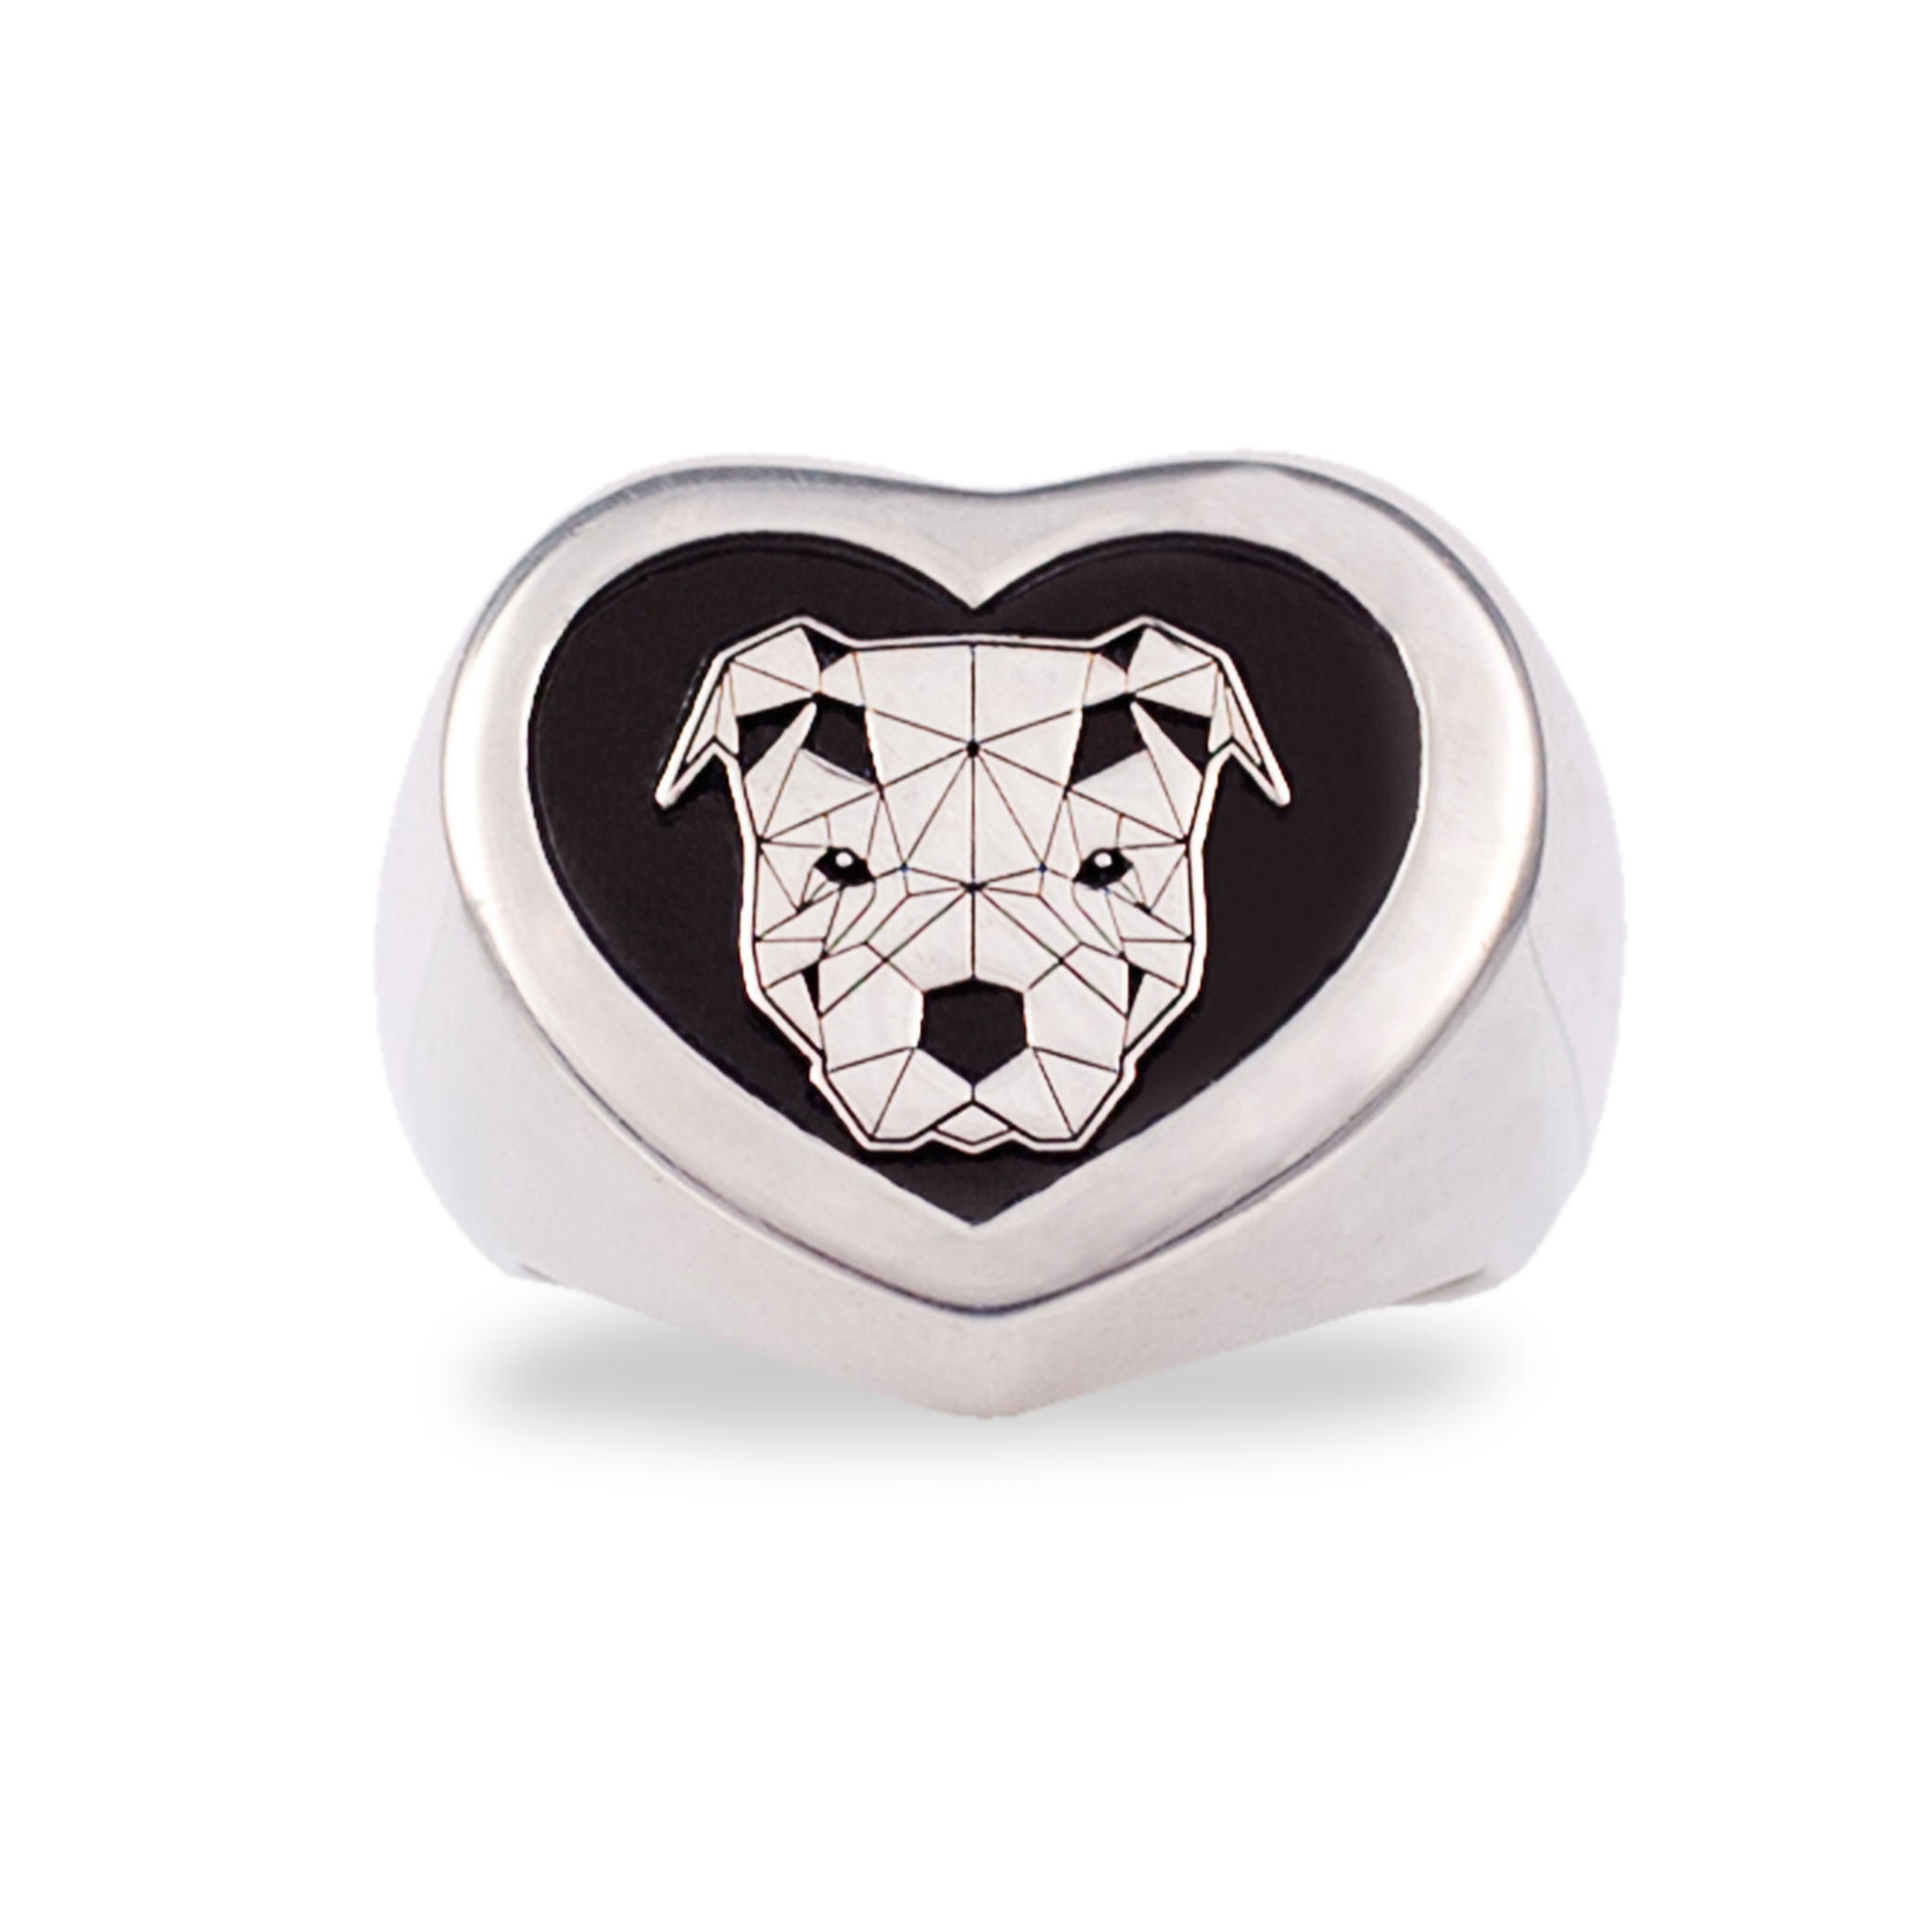 anello cane logo doge argento 925 made in italy